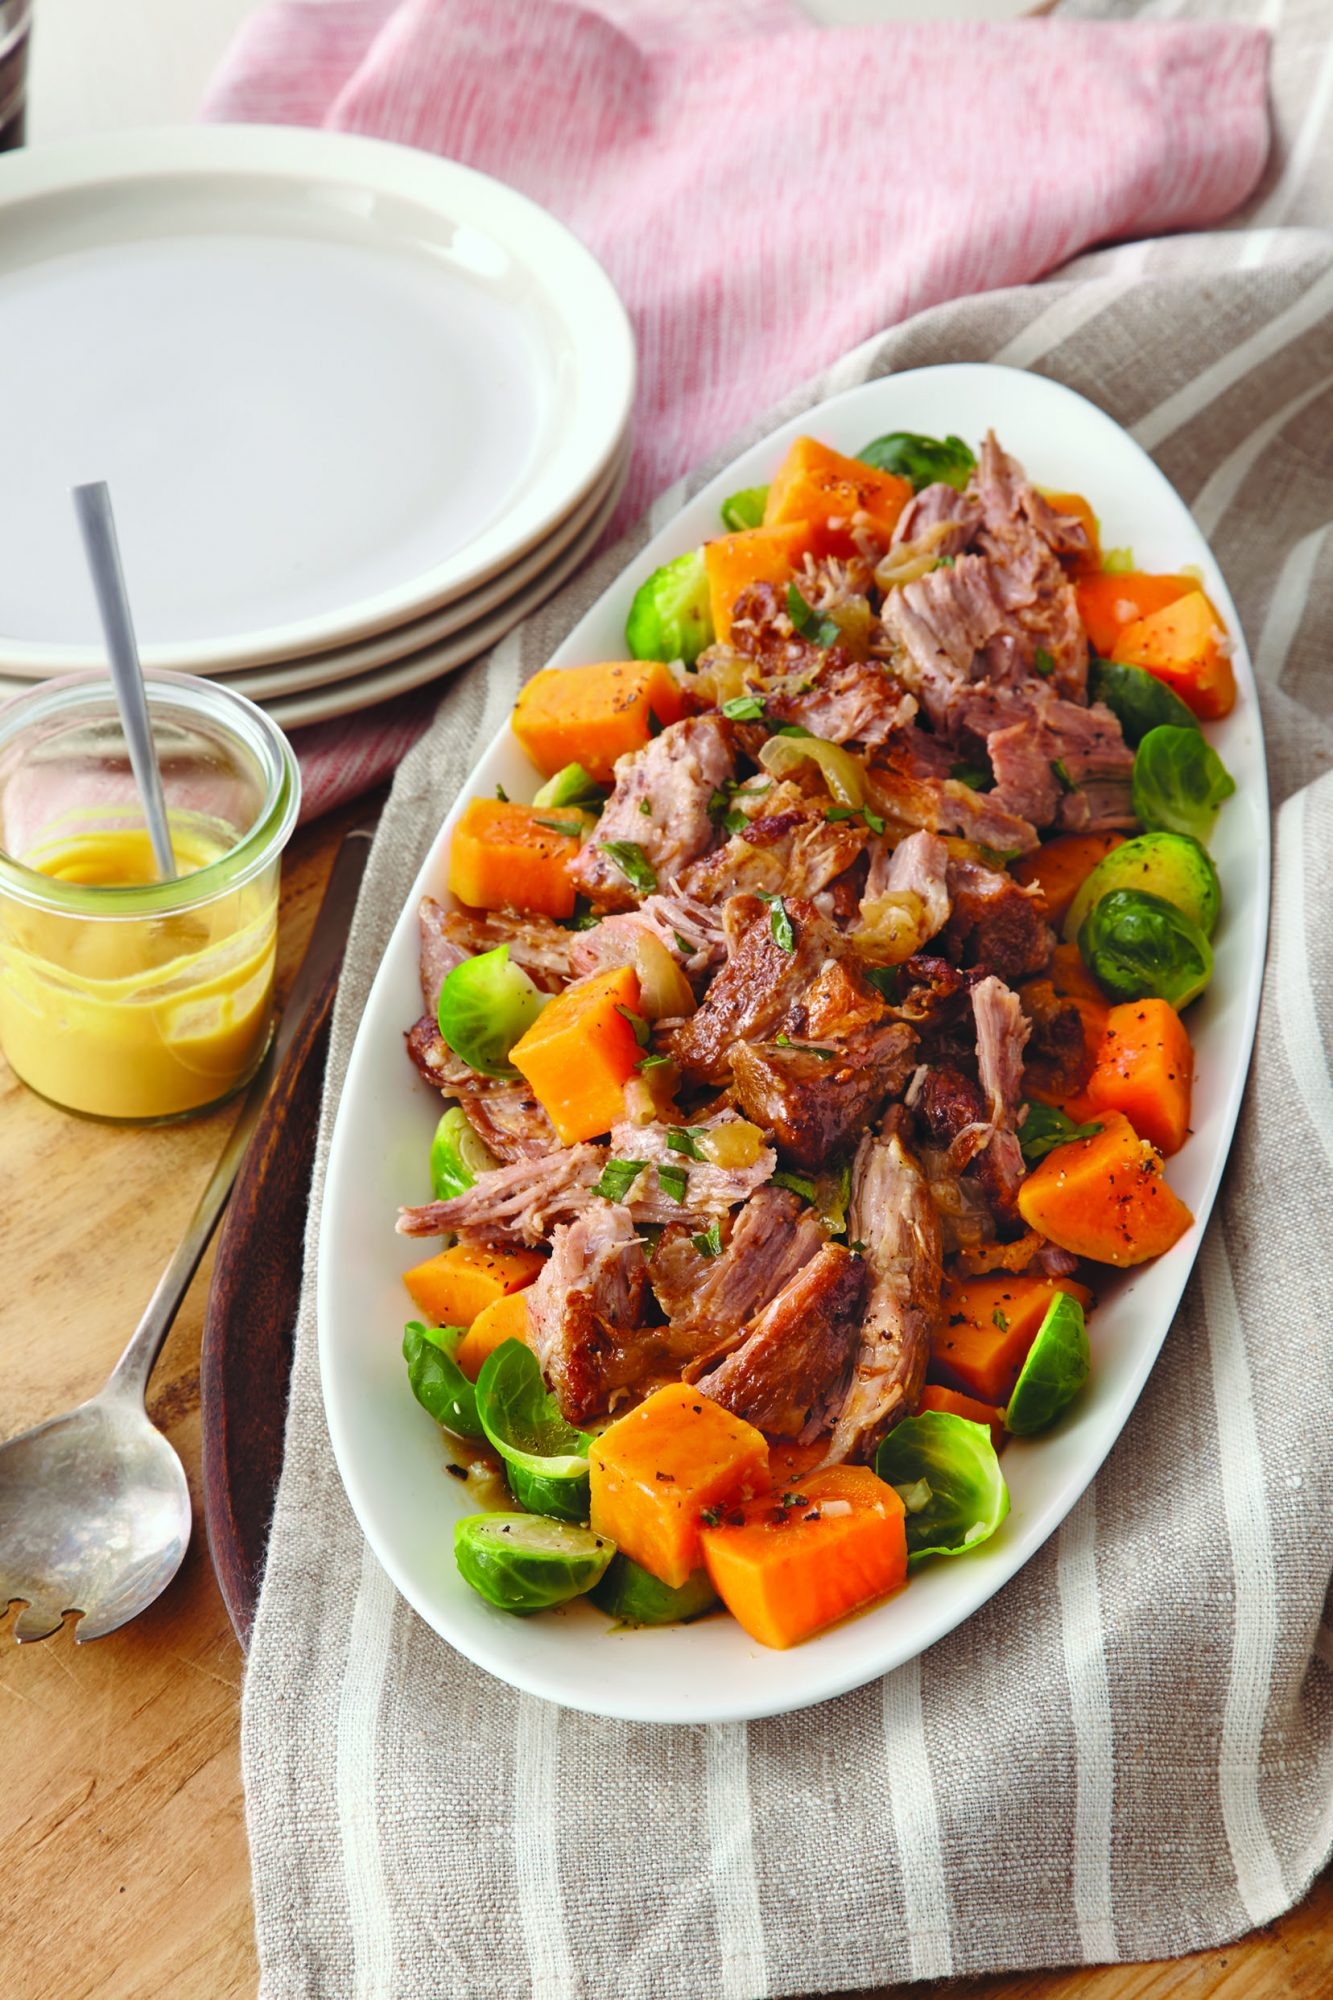 Roast Pork with Brussels Sprouts and Sweet Potatoes